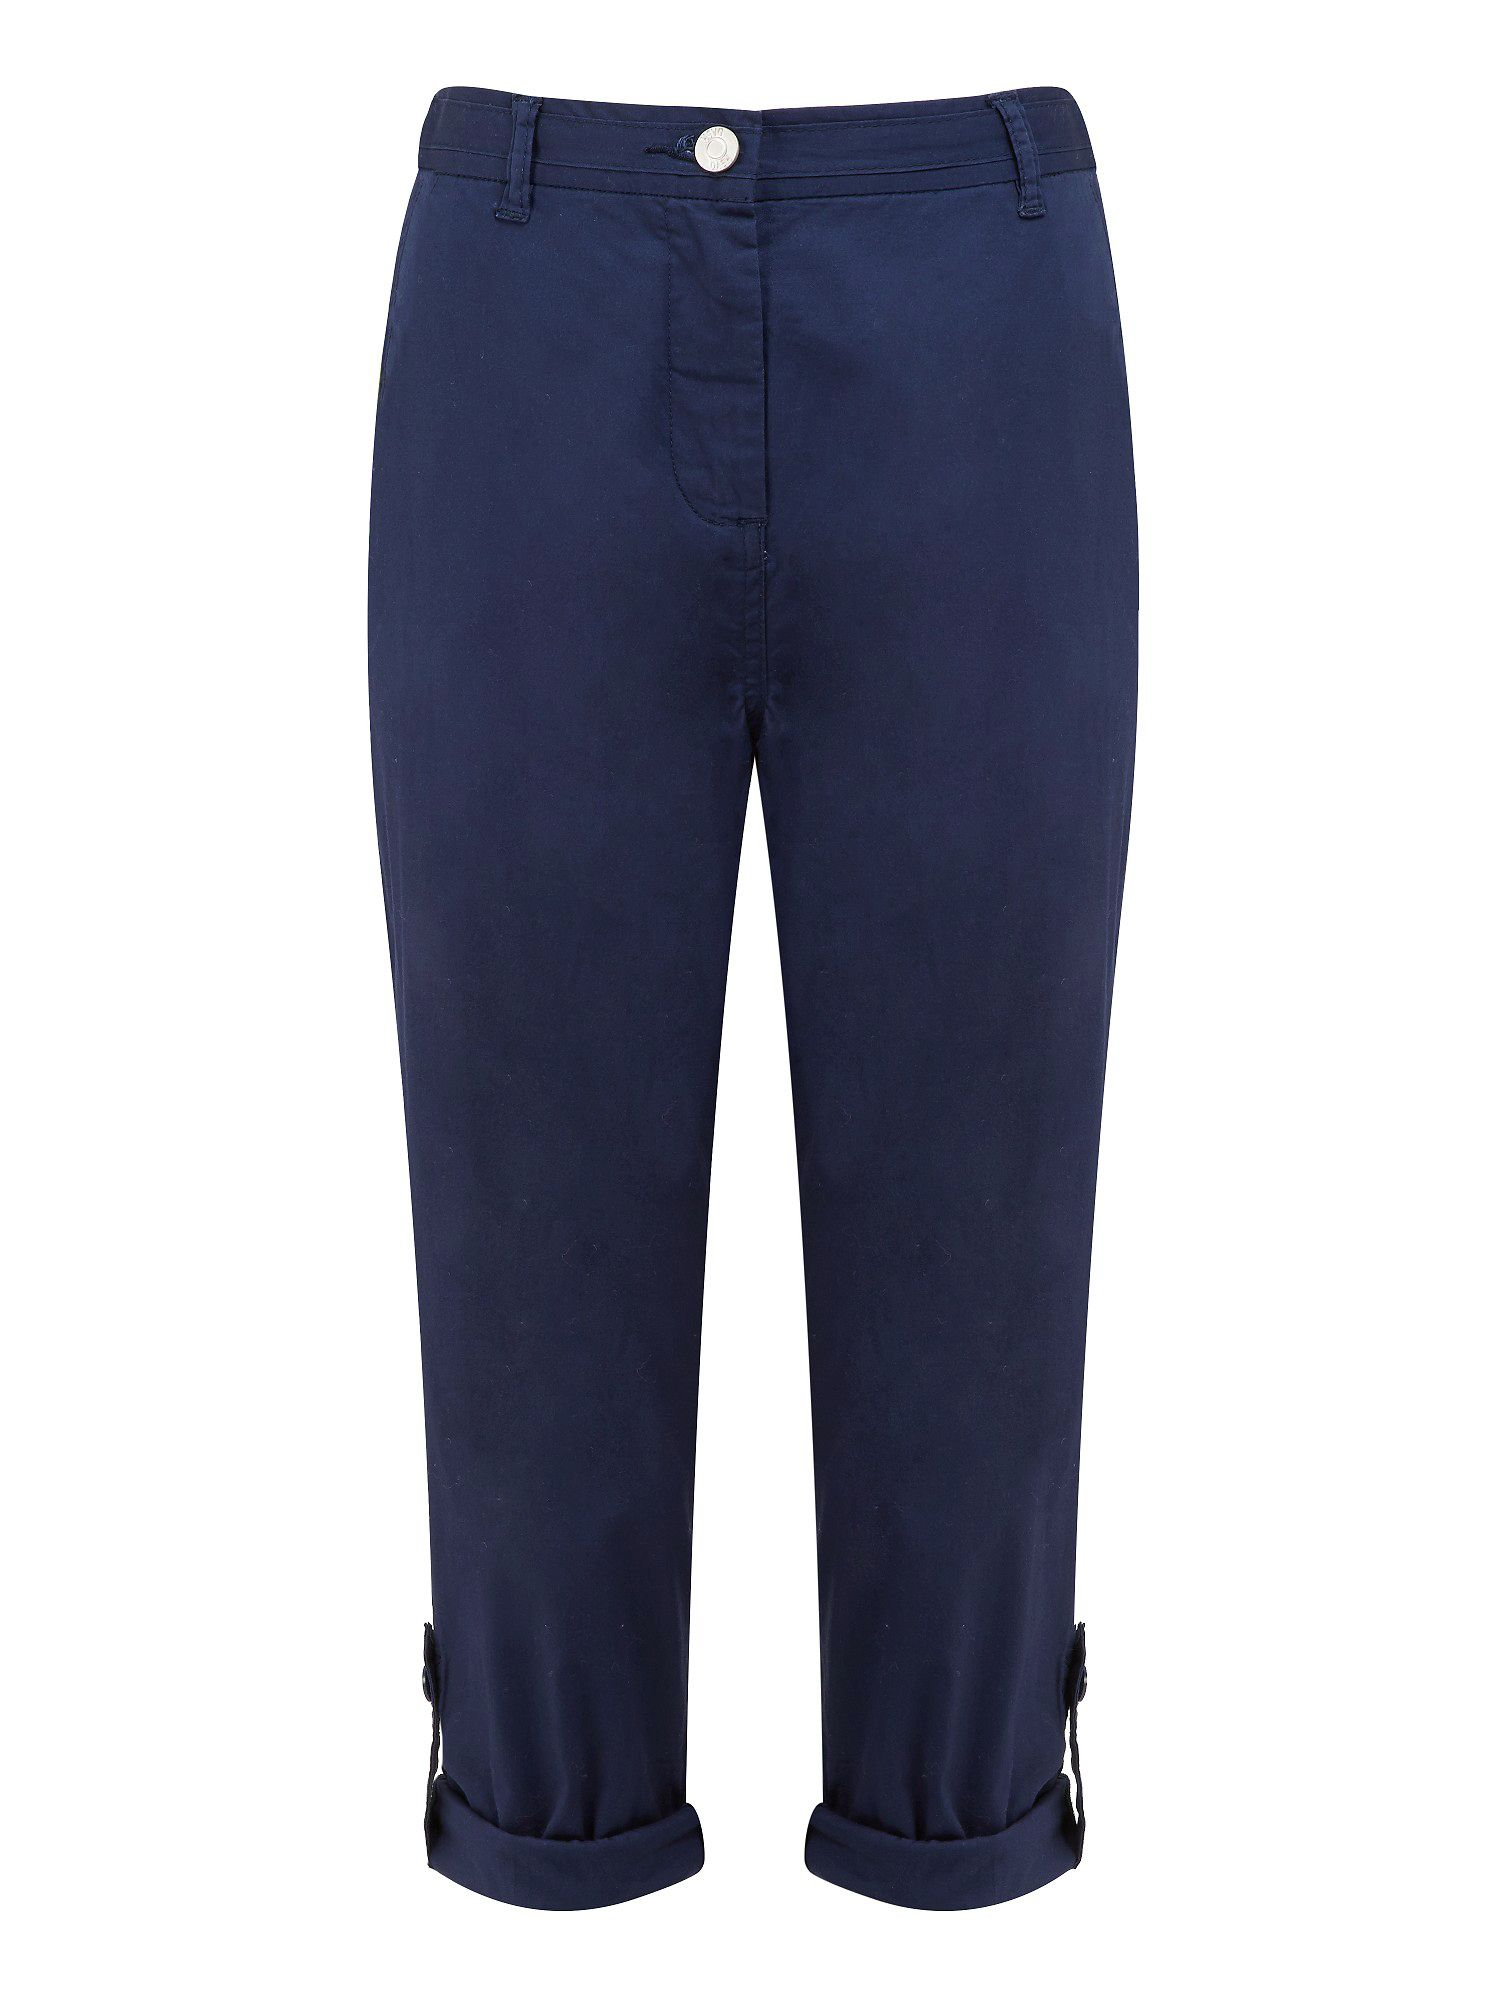 Roll up cotton trouser long